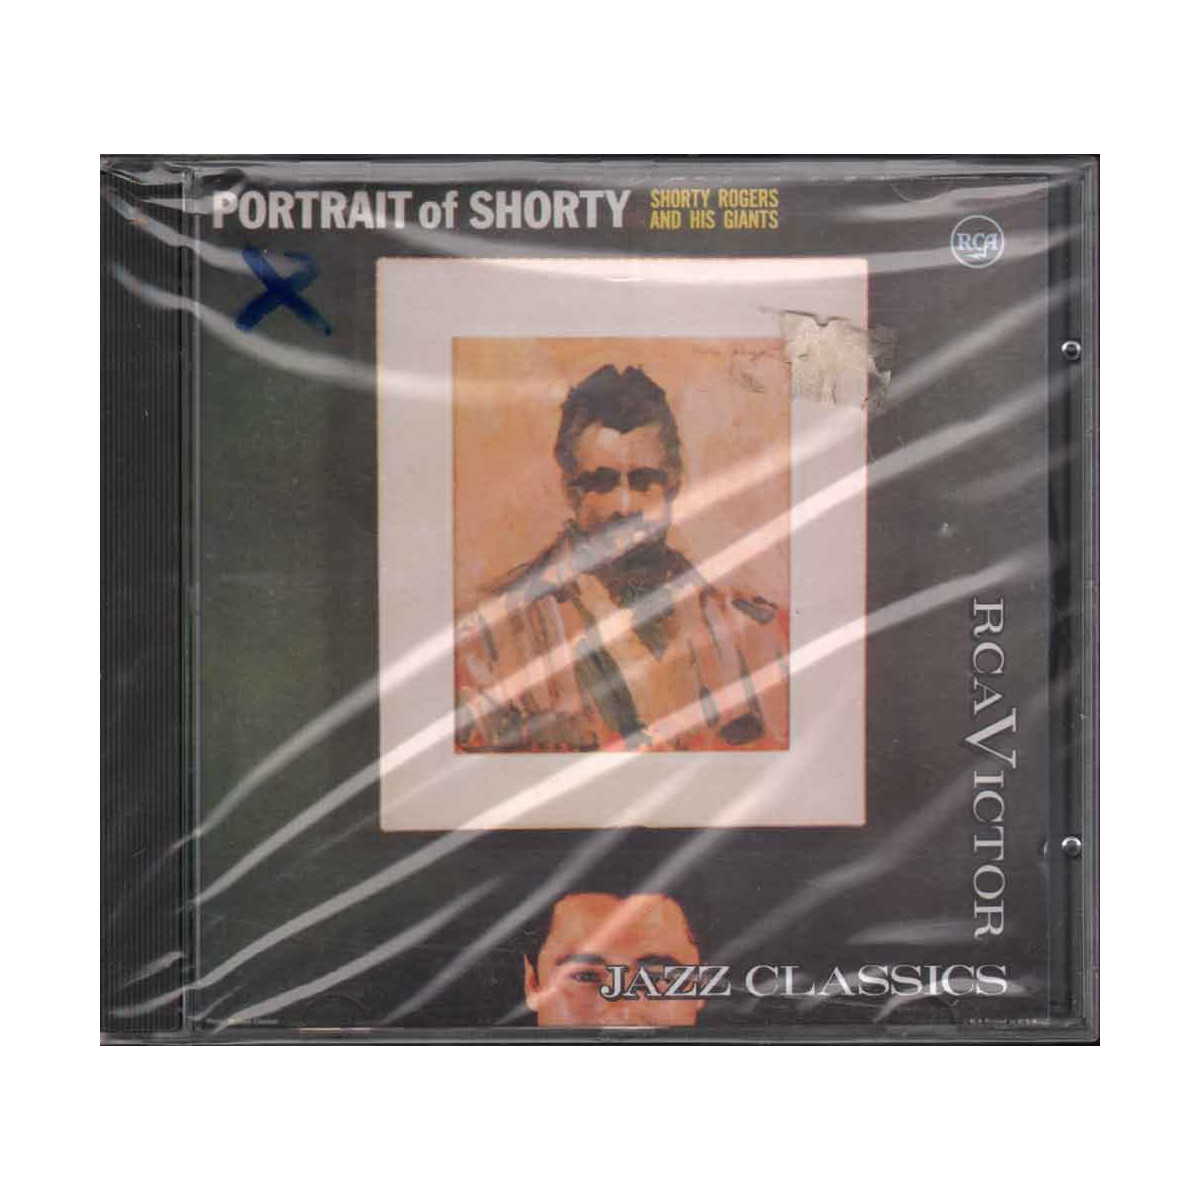 Shorty Rogers And His Giants  CD A Portrait Of Shorty Sigillato 0743212182224